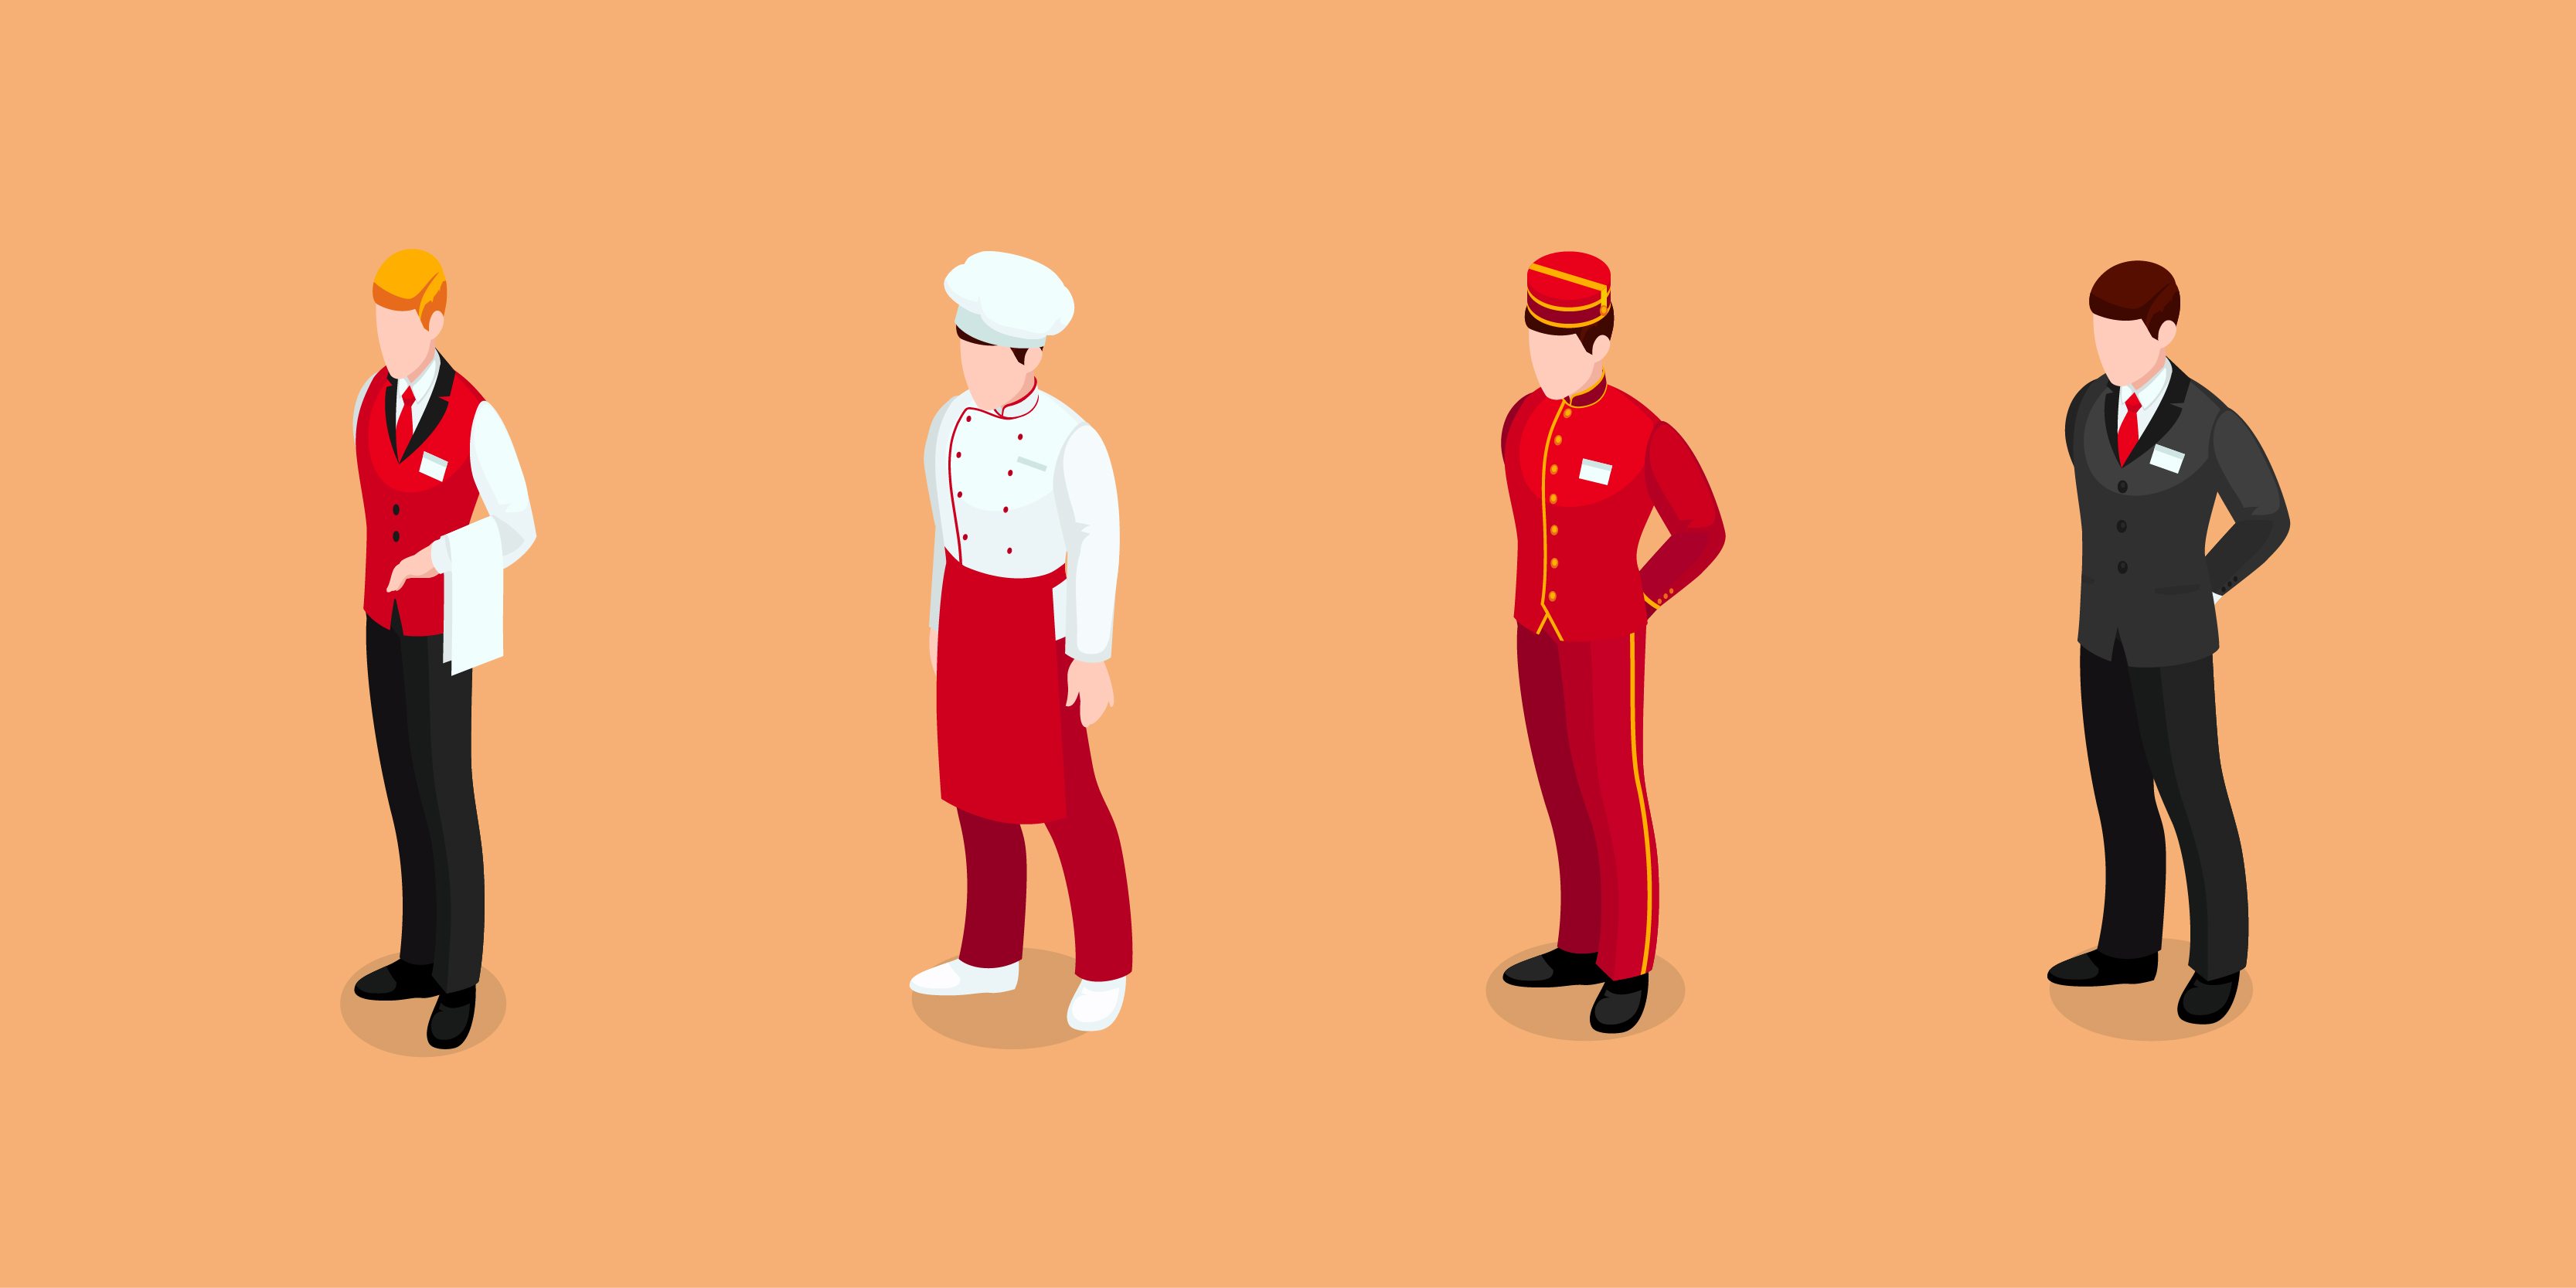 staff-uniform